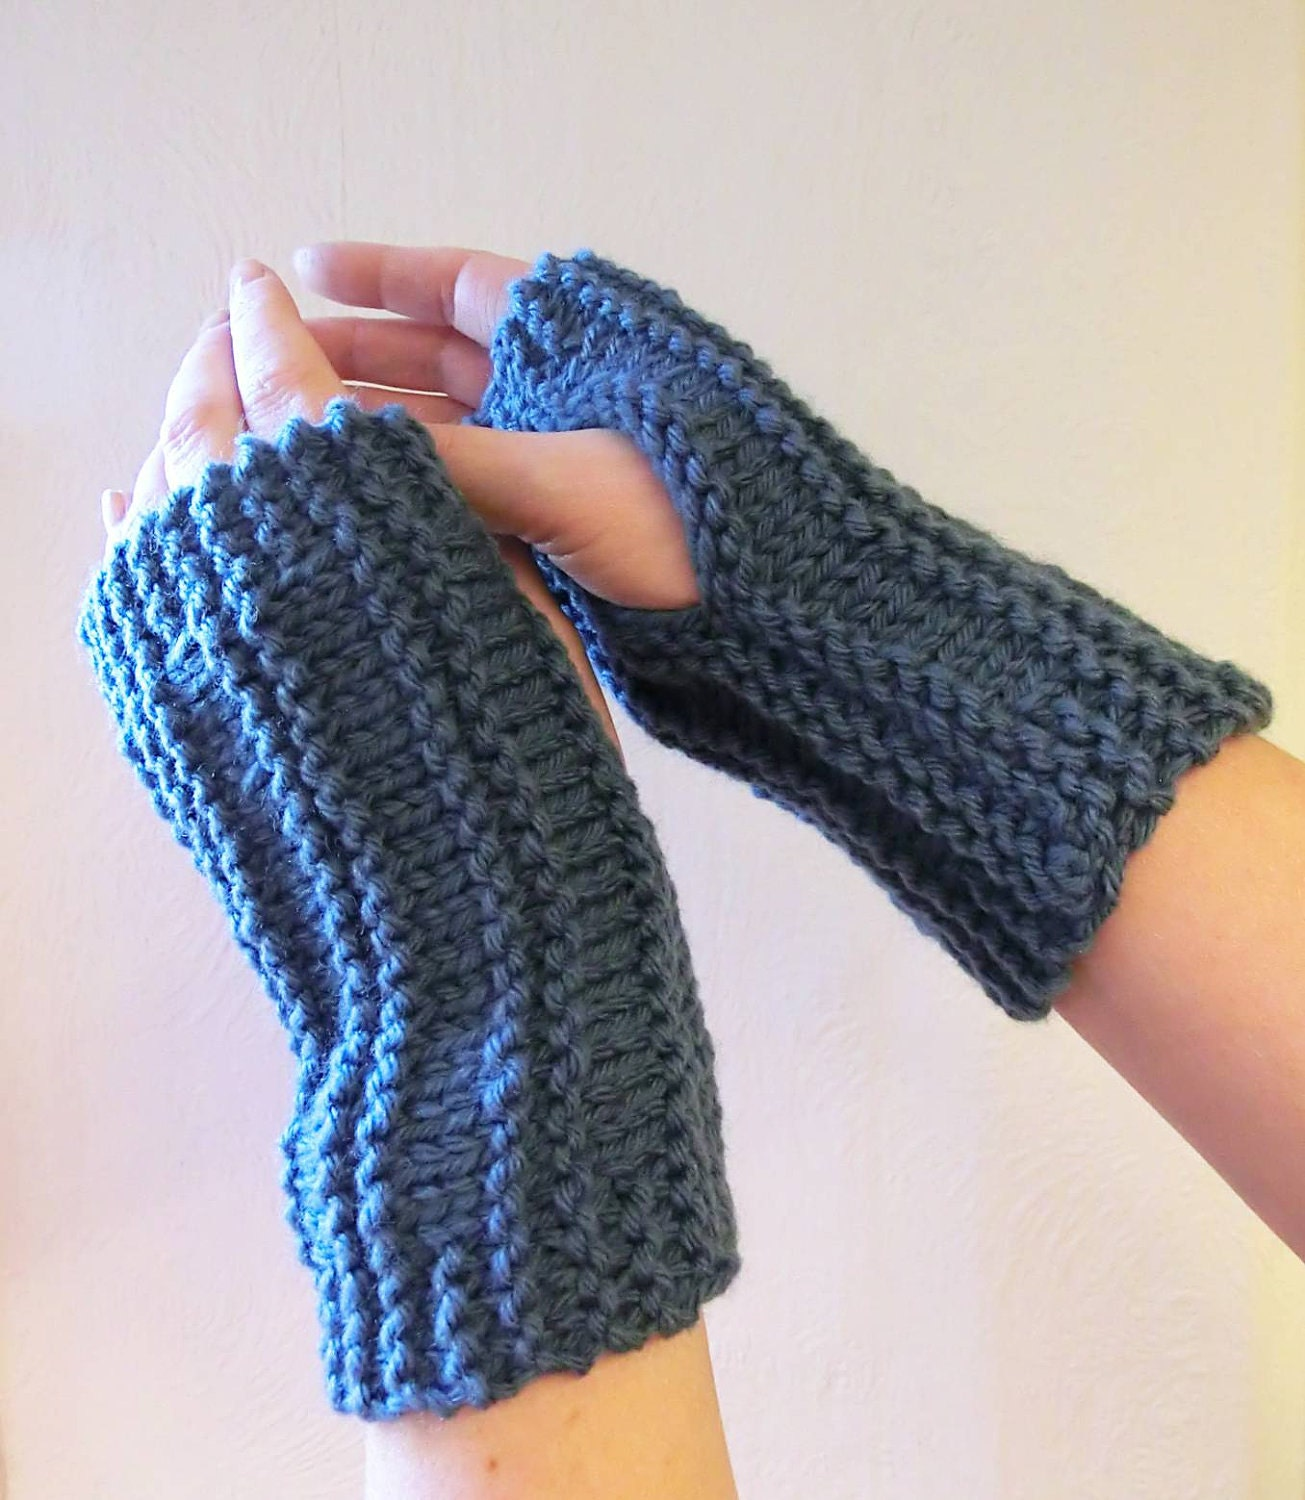 Knit Arm Warmer Pattern : Knitting Pattern for Wrist warmers